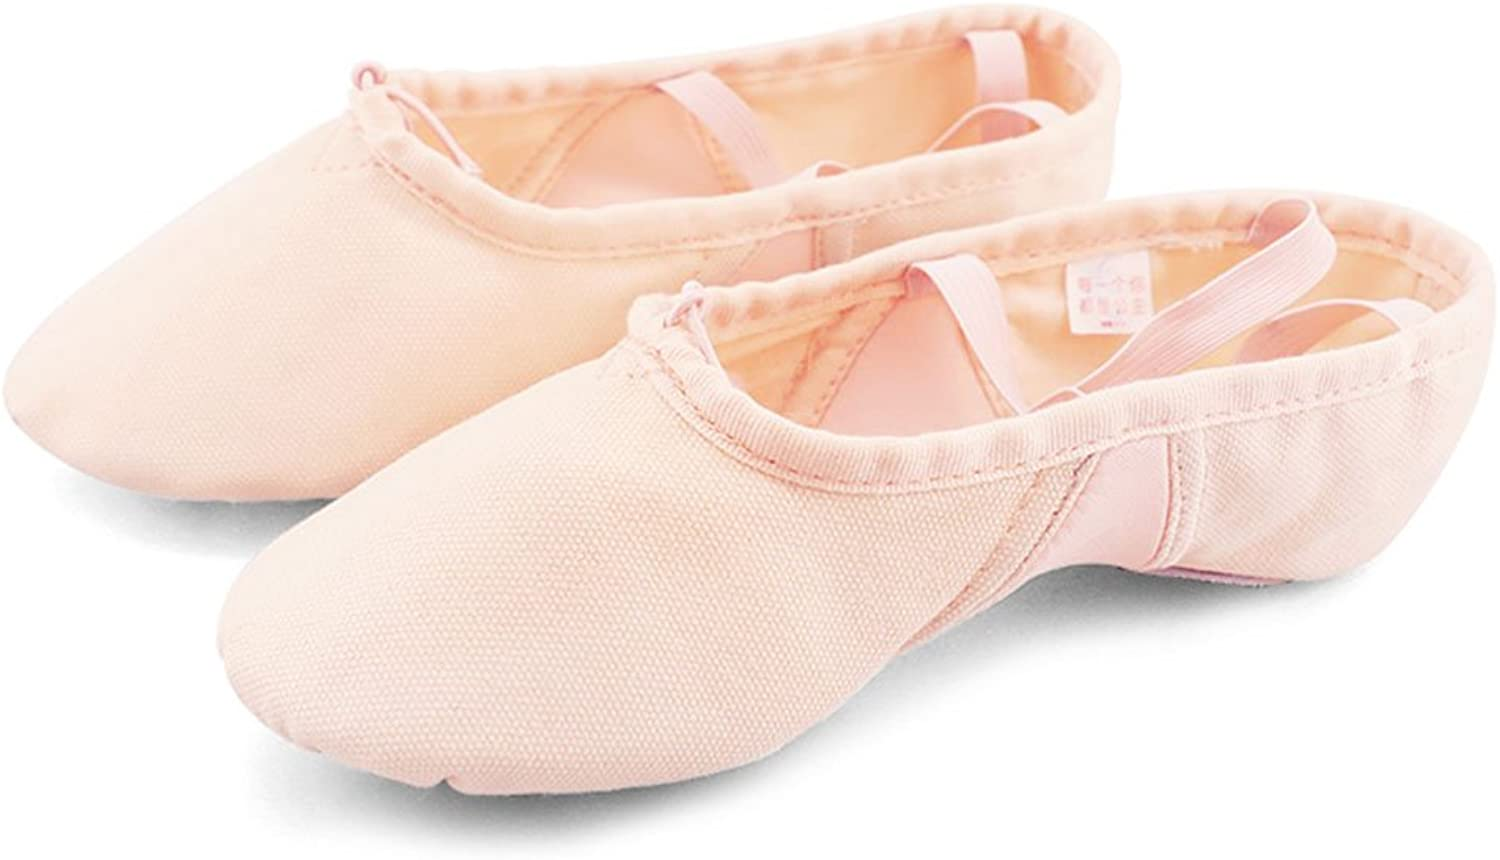 Daydance Canvas Ballet shoes for Girls Stretch Split Sole Gymnastics Dance shoes for Toddler, Kids, Women